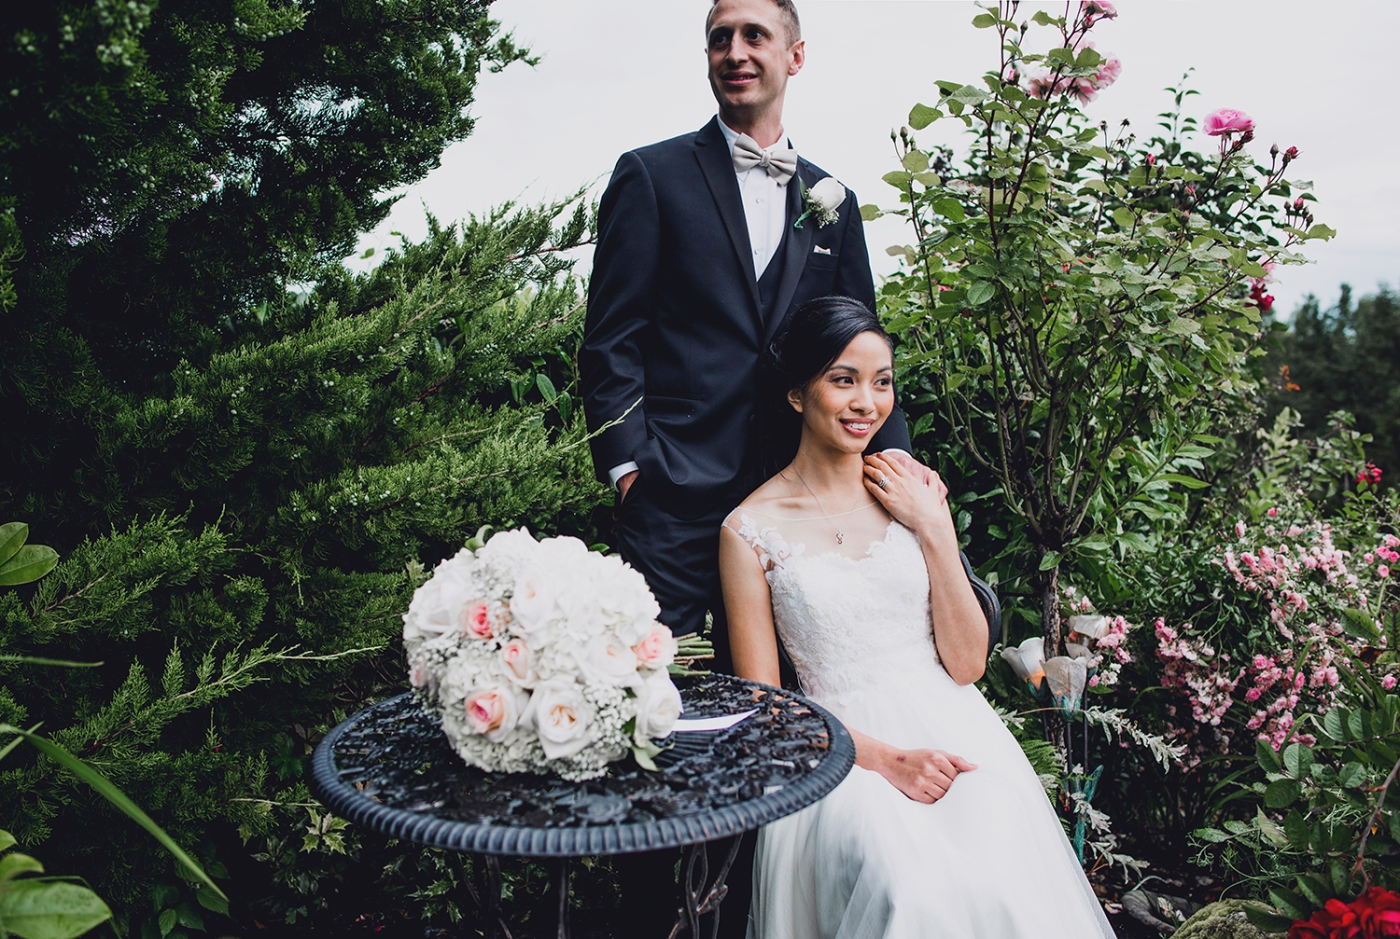 Jane_Speleers_photography_Seattle_Wedding_at_Wild_Rose_estate_2016_Julienne_and_Brian_bride_groom_ DSC_0408